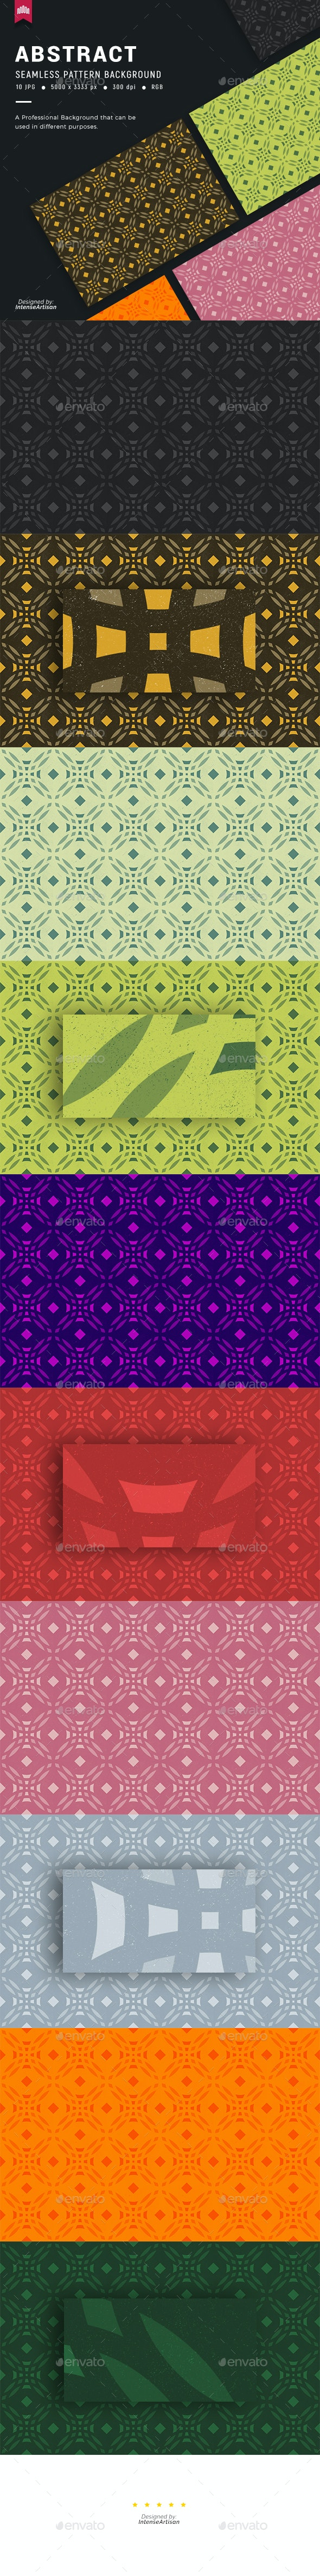 Abstract Seamless Pattern Background - Patterns Backgrounds